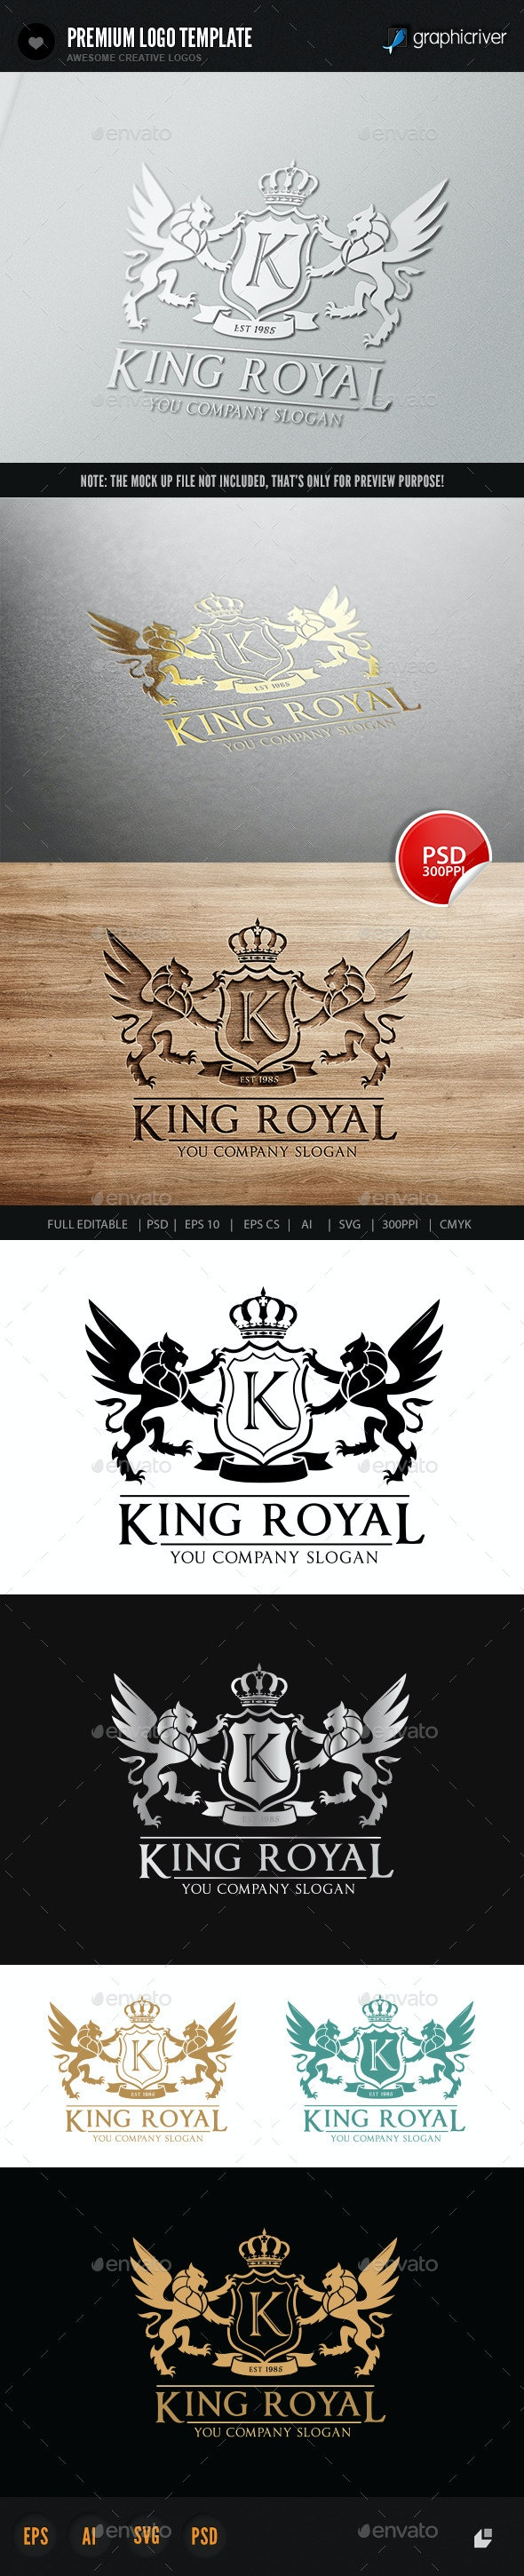 King Royal Logo II - Crests Logo Templates